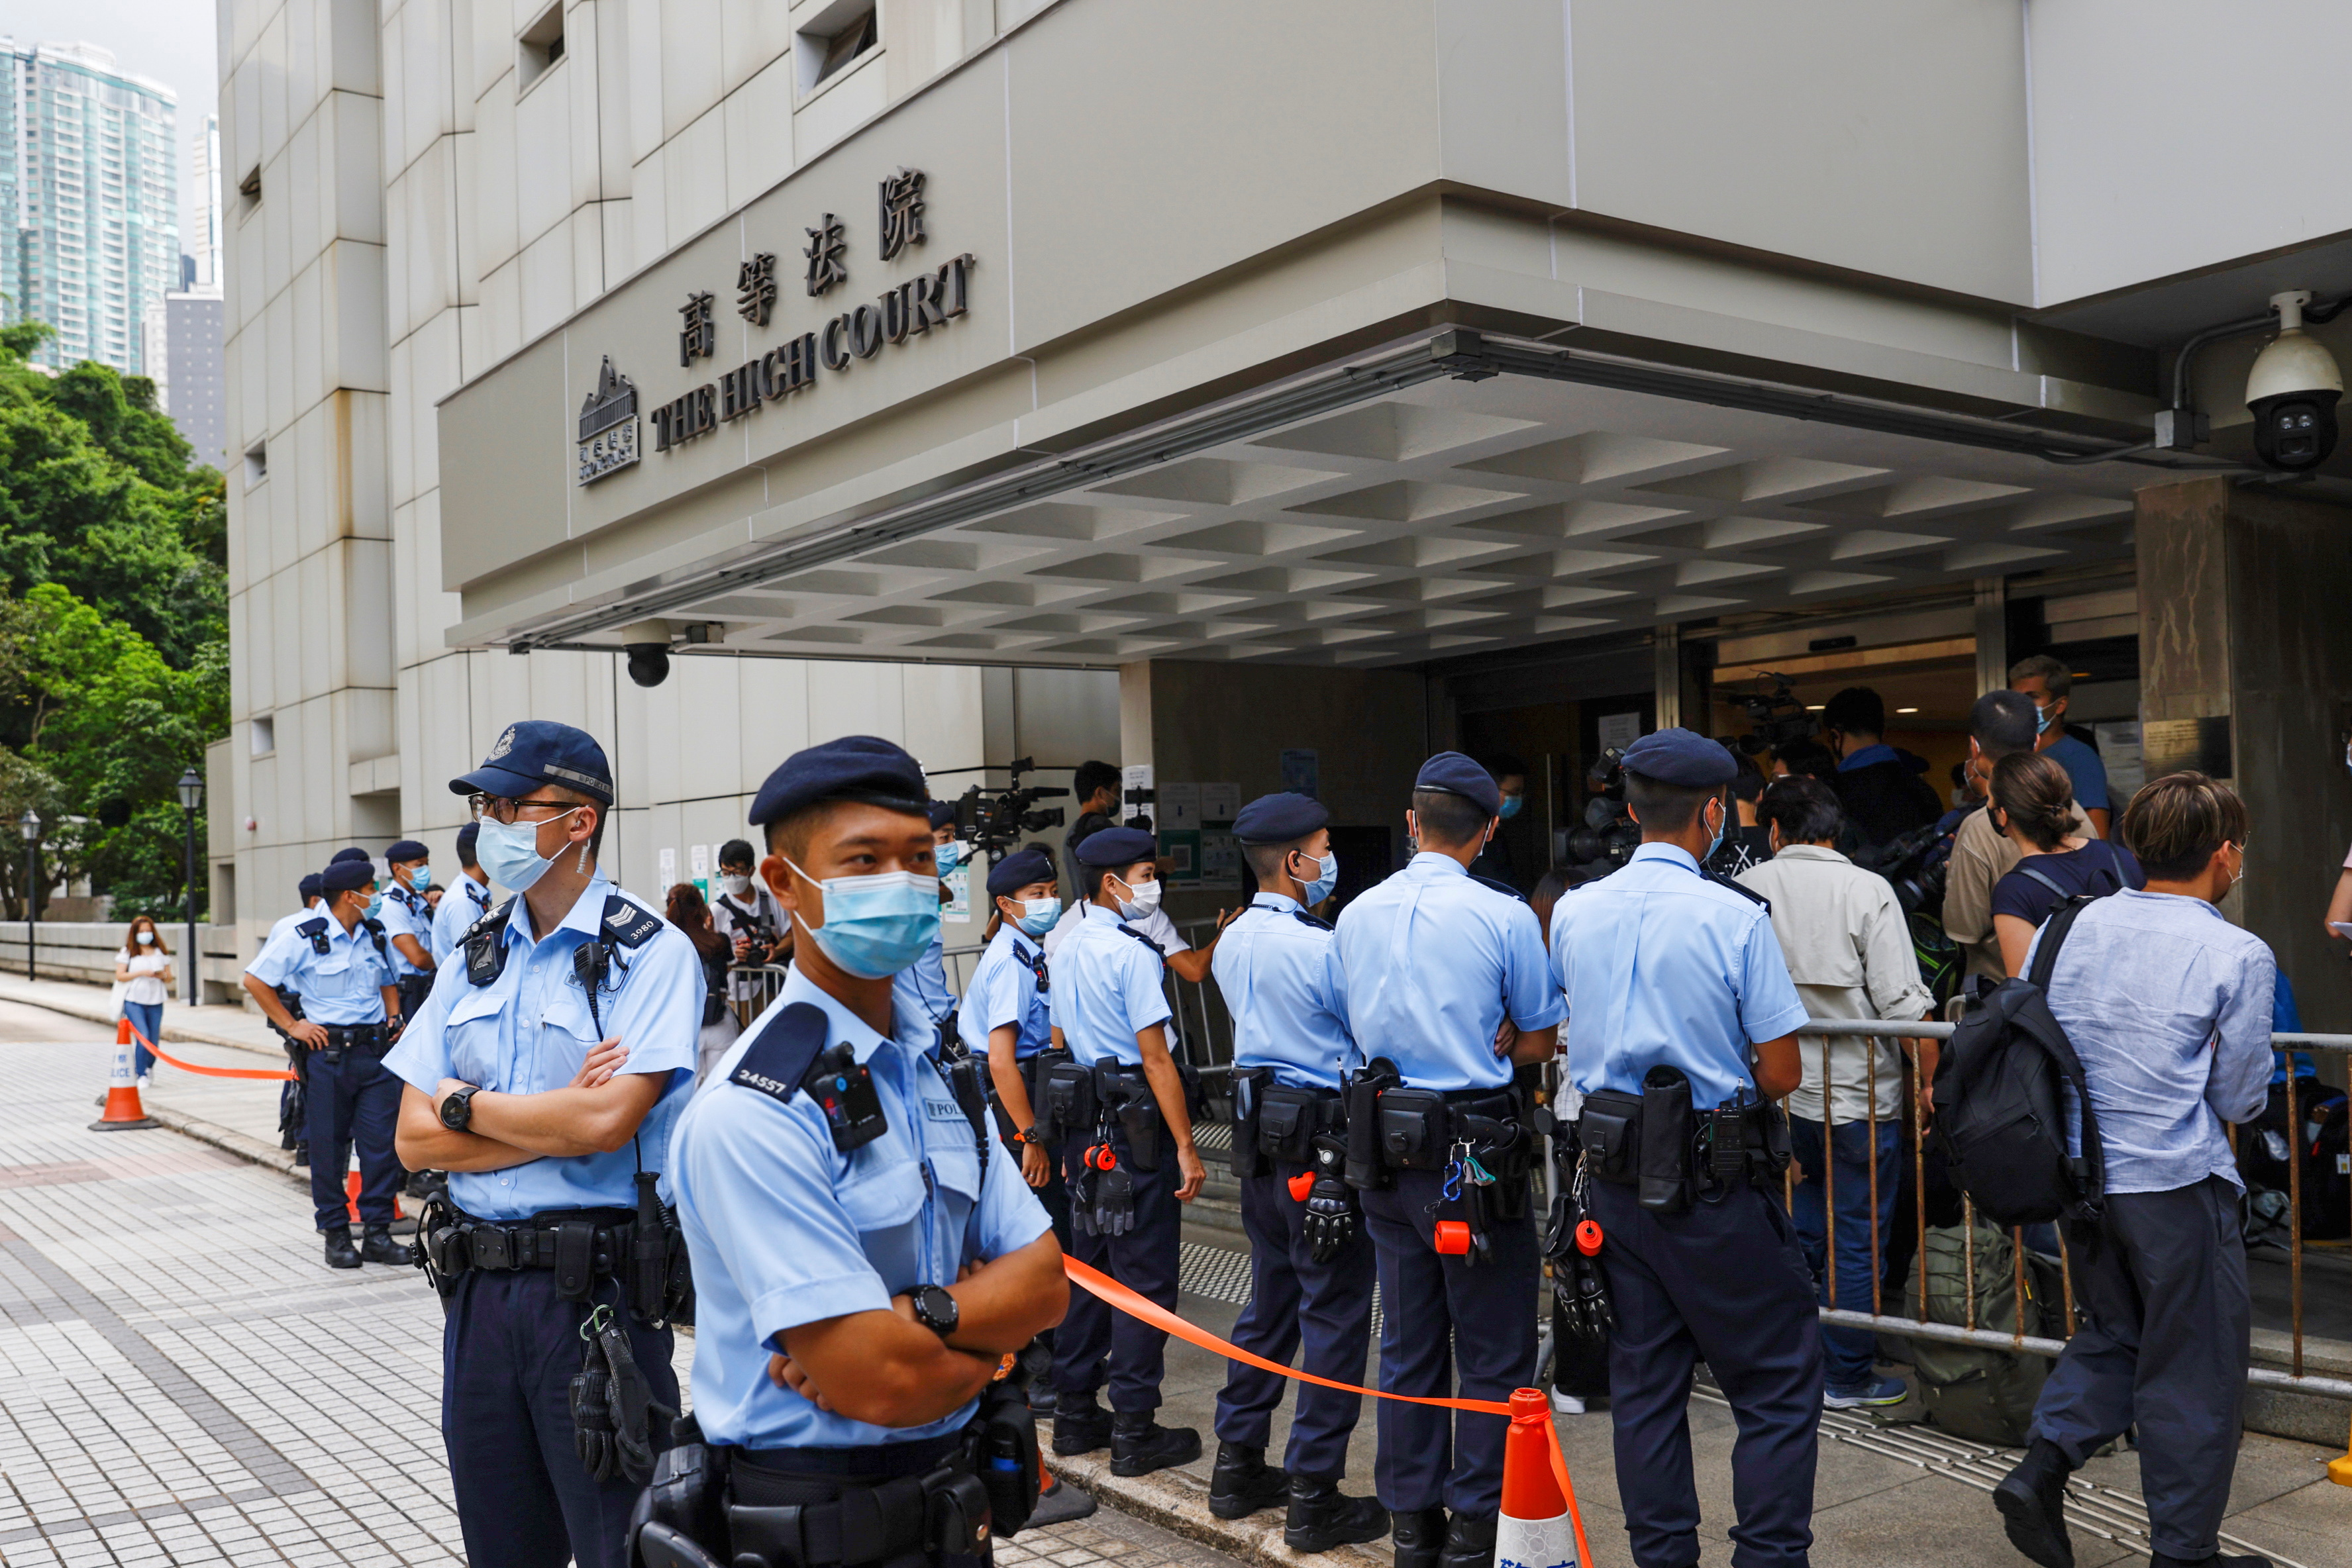 Police stand guard outside the High Court during court hearing of Tong Ying-kit, the first person charged under a new national security law, in Hong Kong, China. July 30, 2021. REUTERS/Tyrone Siu